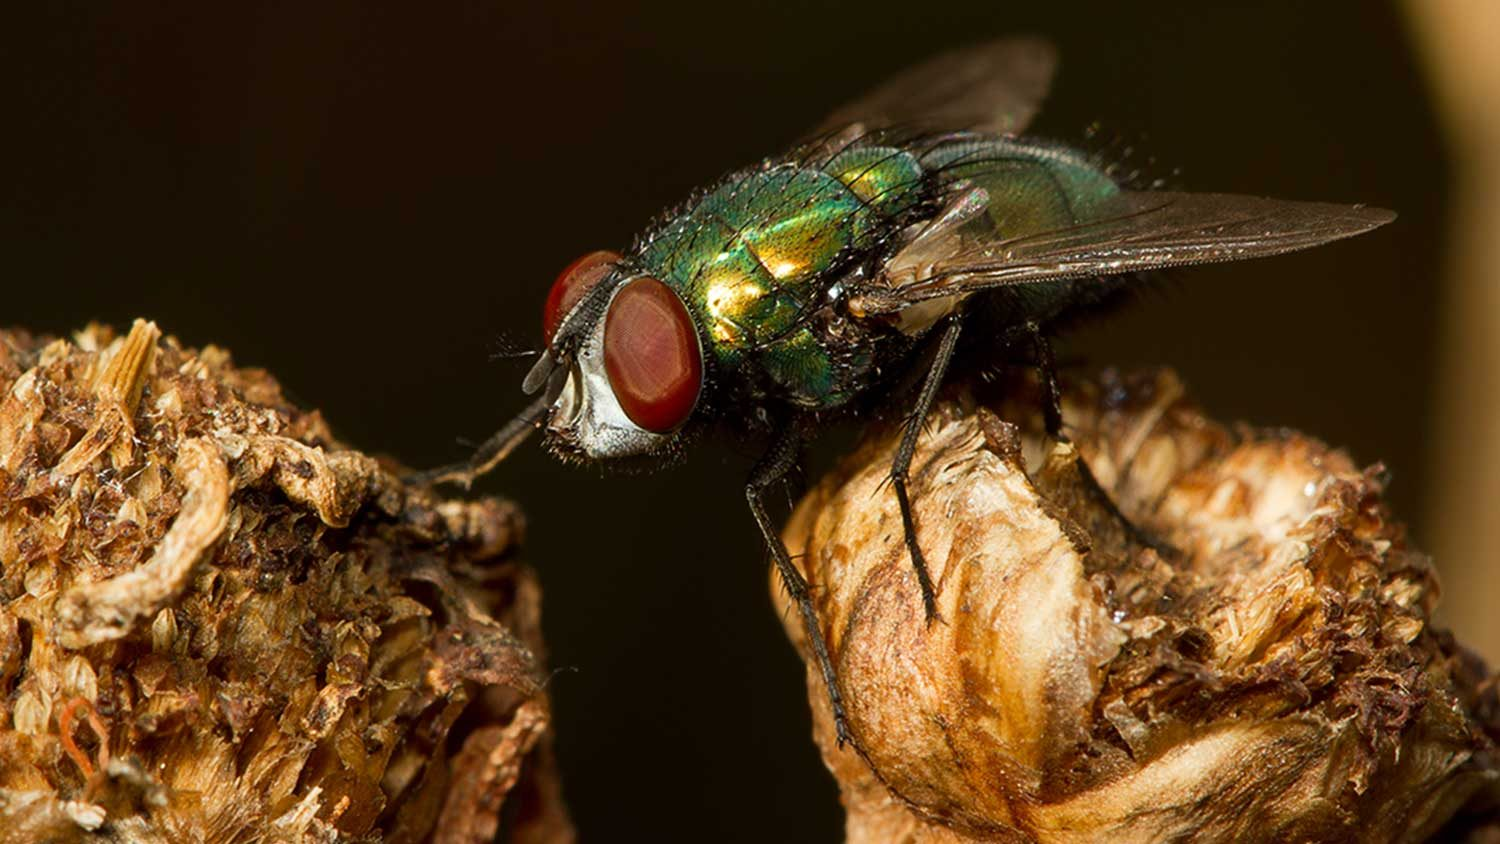 Insect, the Australian sheep blowfly